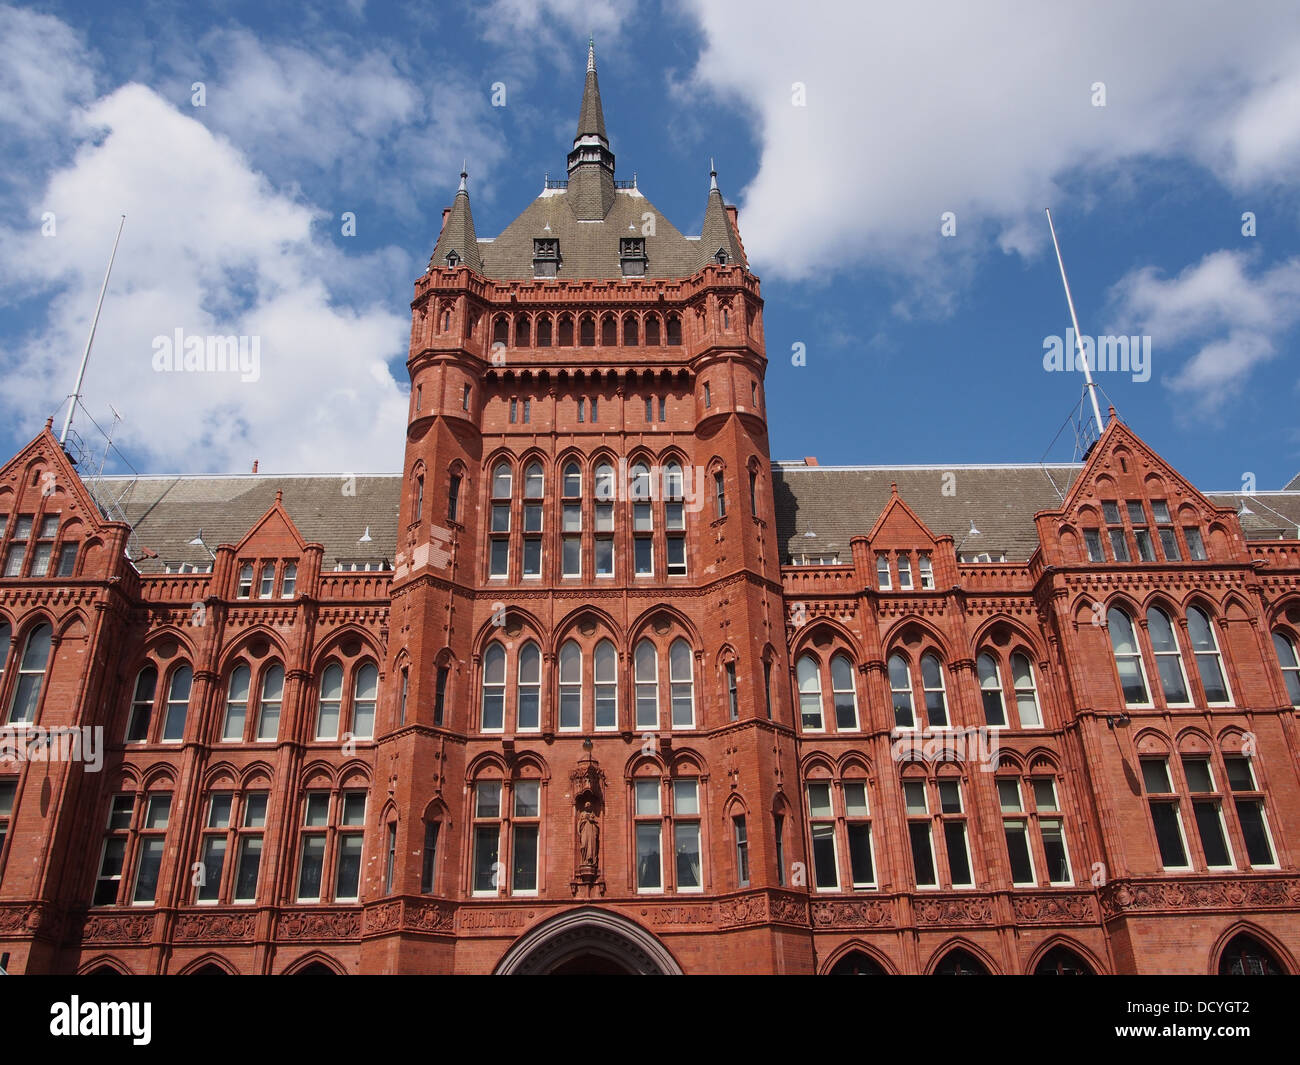 London Prudential Assurance Building, High Holborn - Stock Image